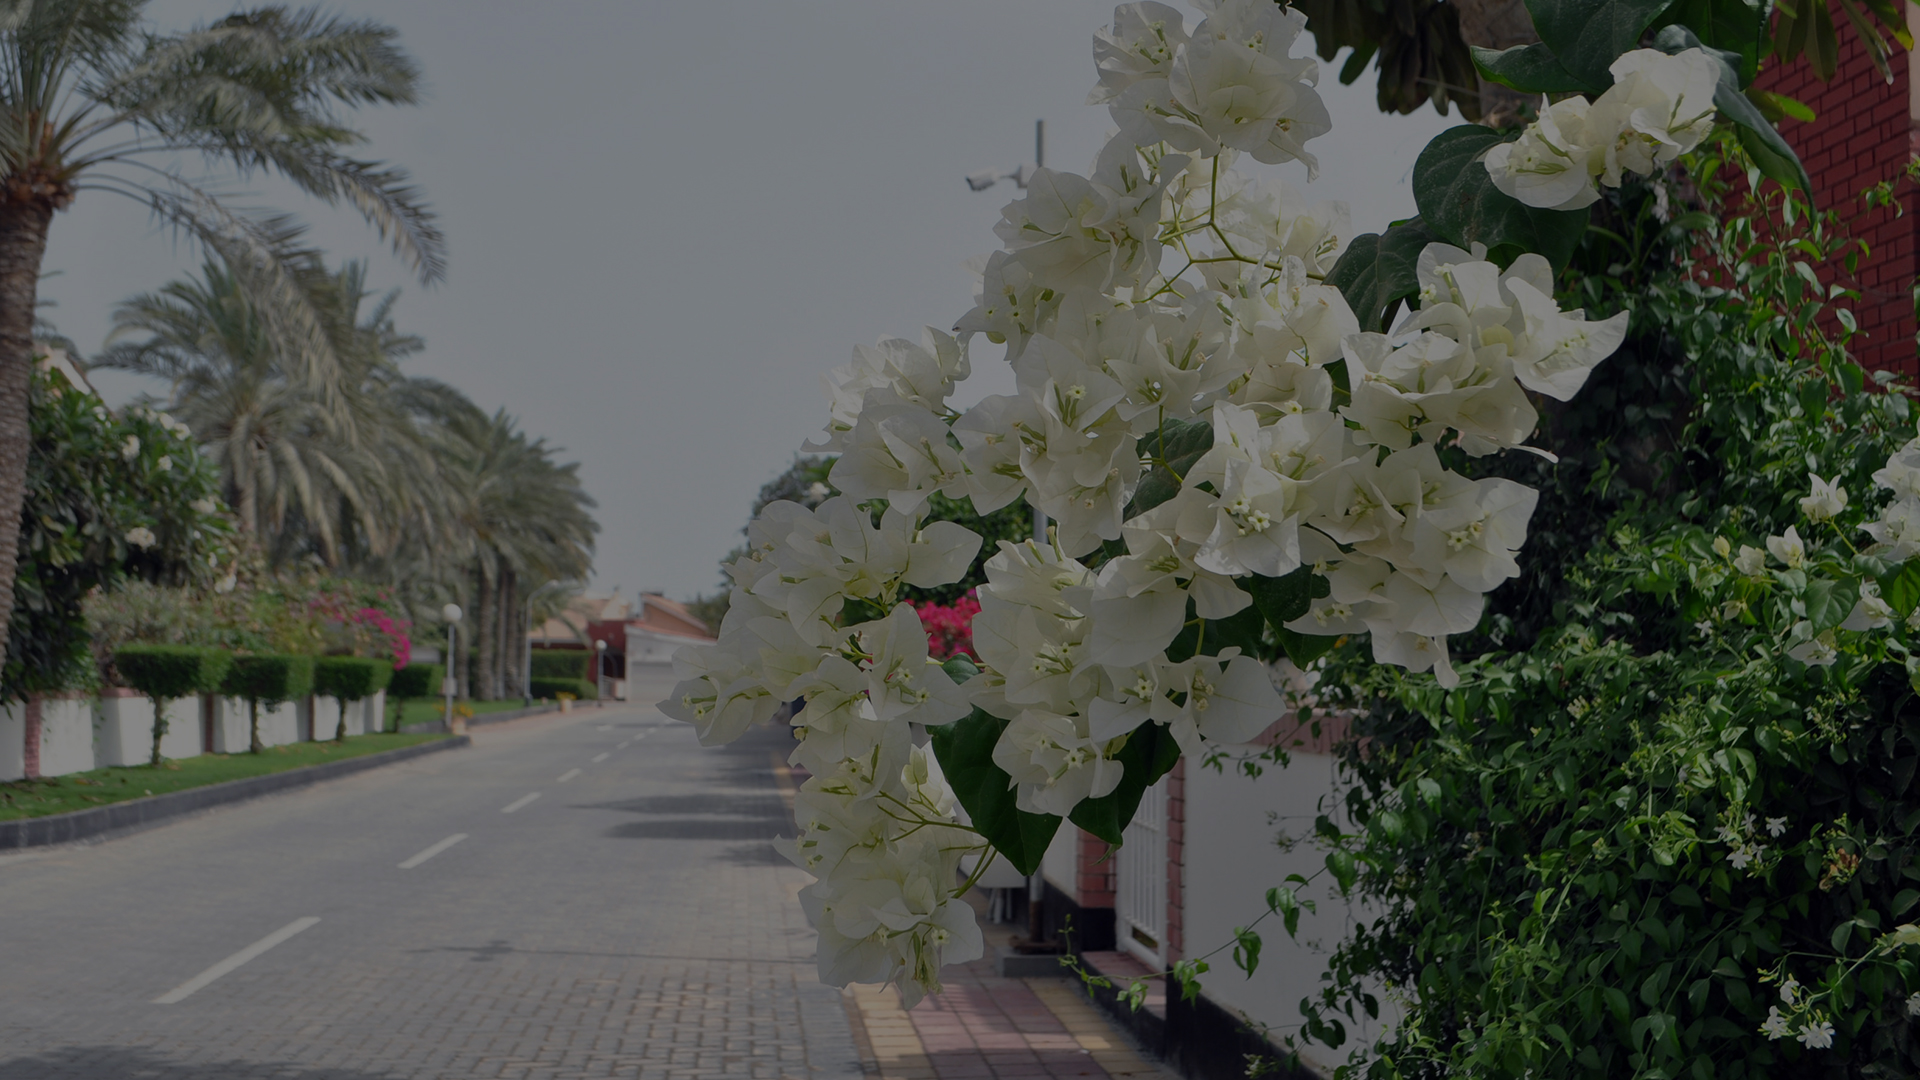 Beautiful White Flowers sprouting alongside a Brick Street